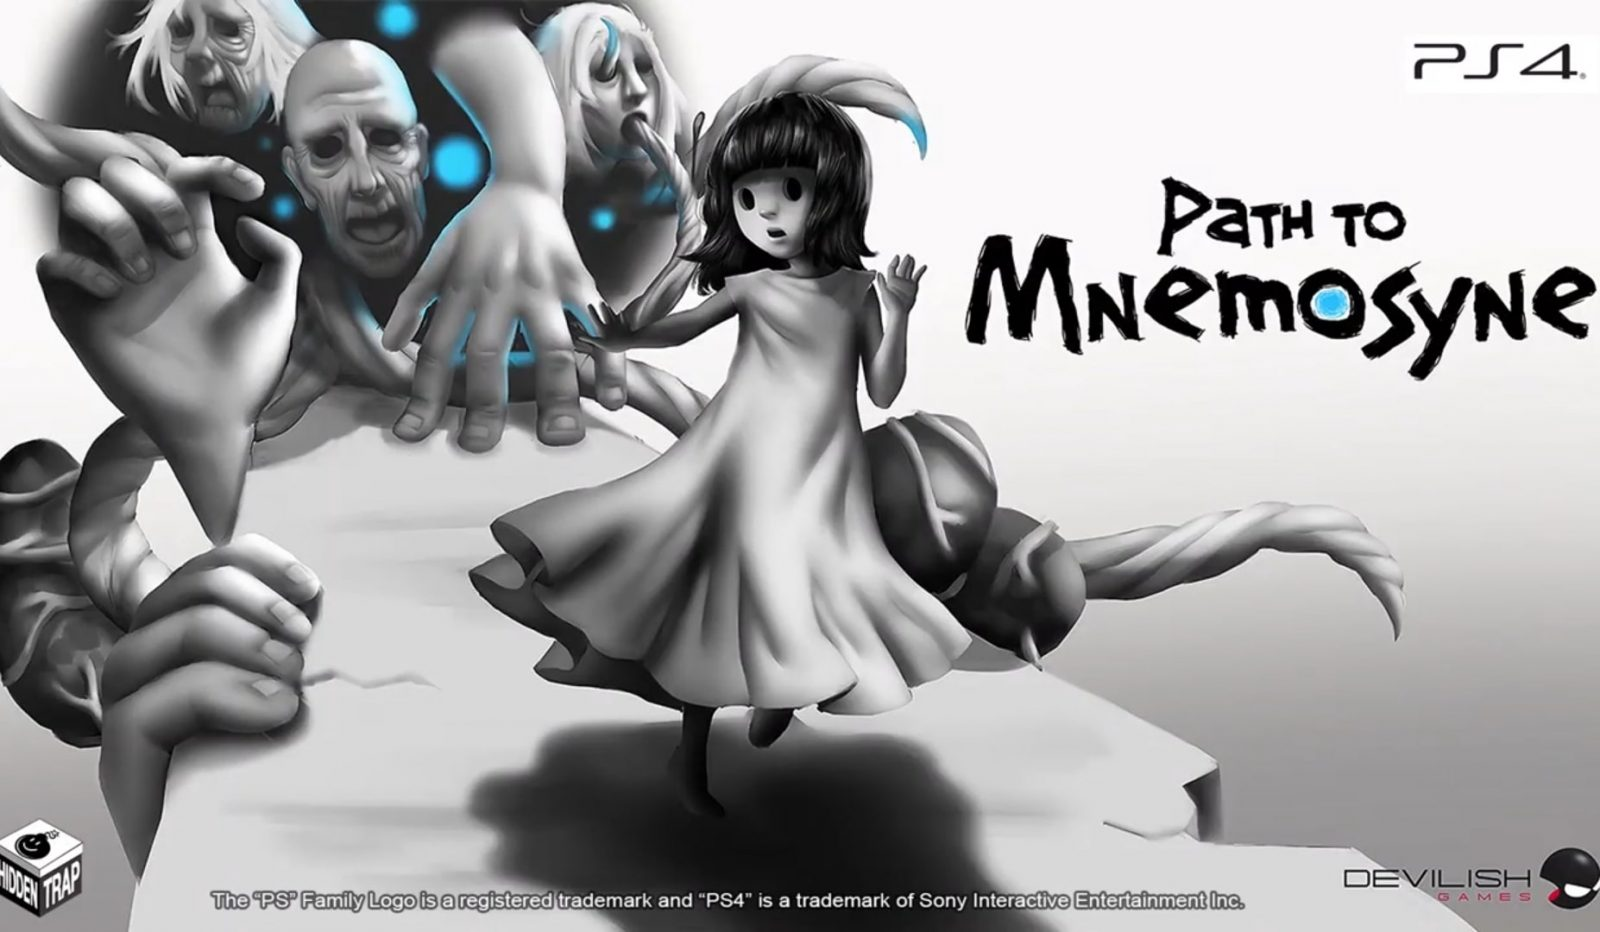 Головоломка Path to Mnemosyne выпущена на iOS и Android